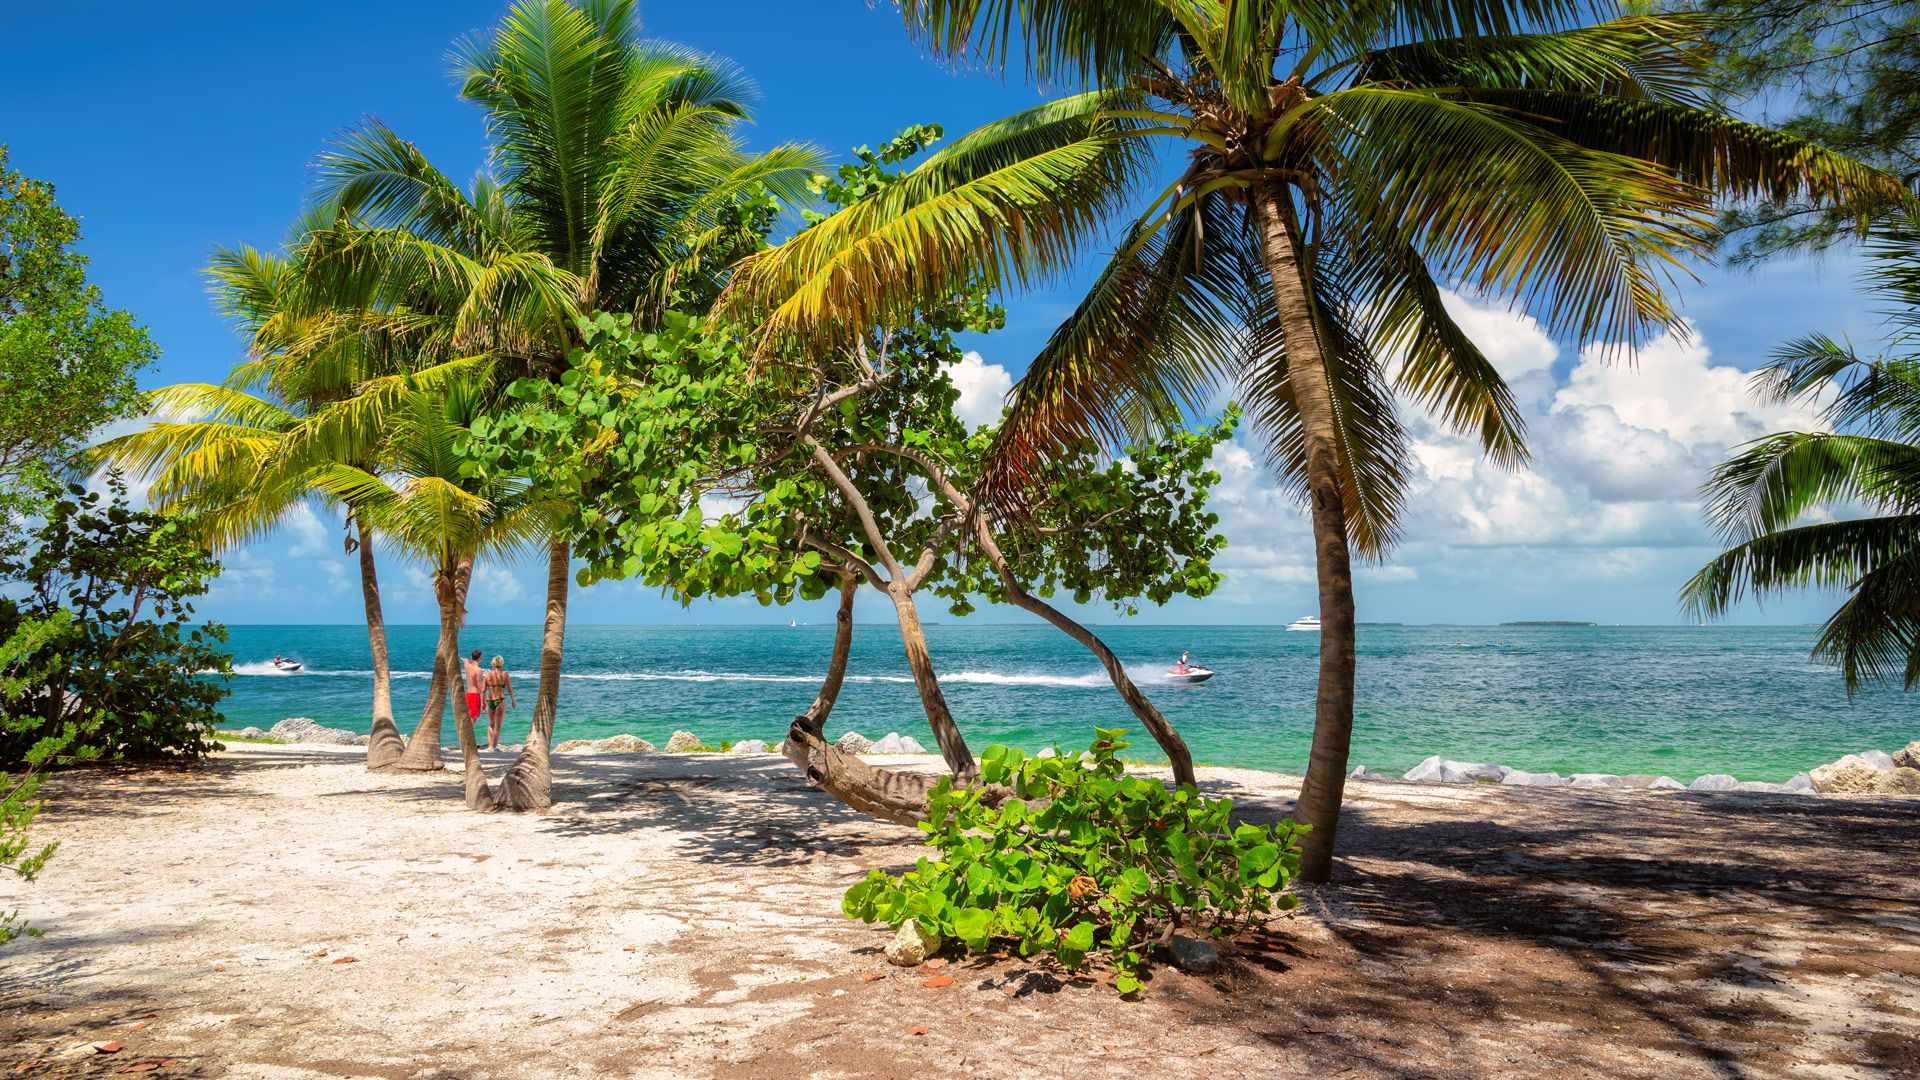 How Many Days Should You Spend in Key West?